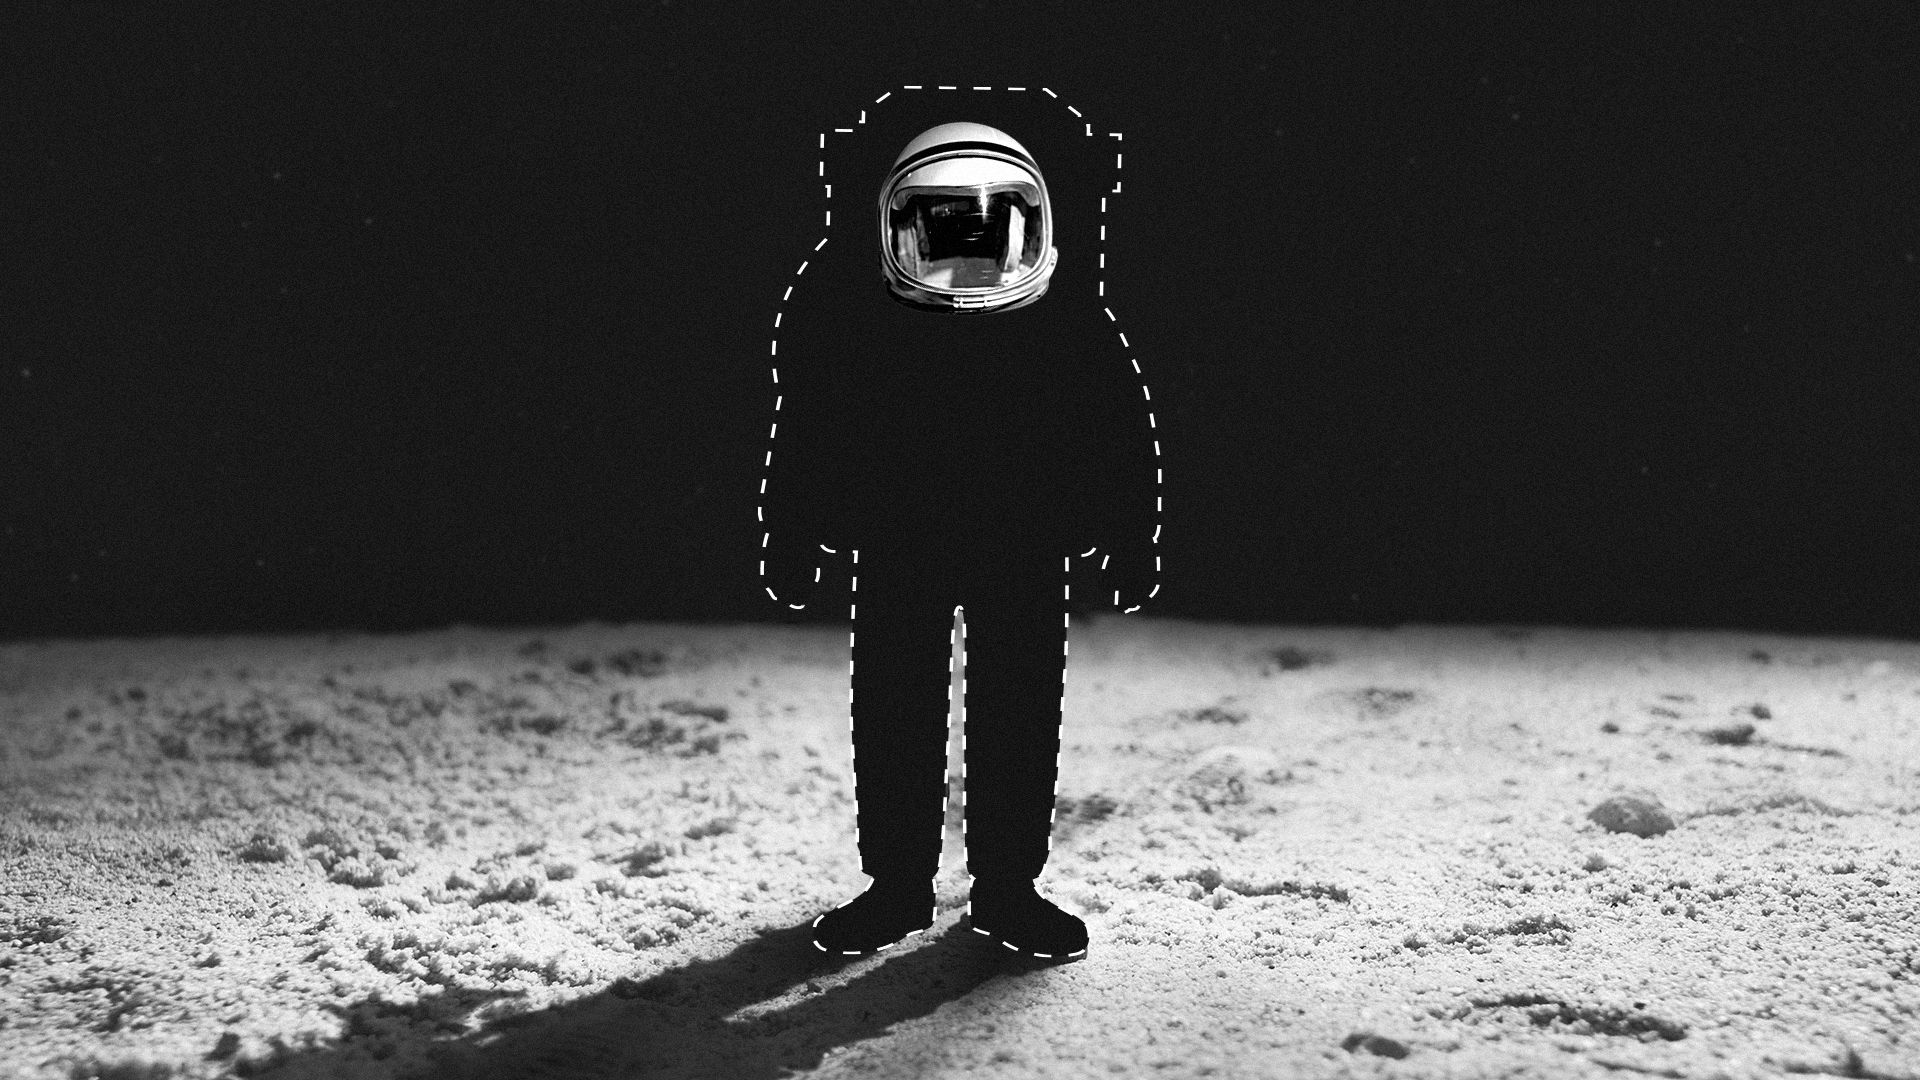 Illustration of an astronaut without a suit on the moon